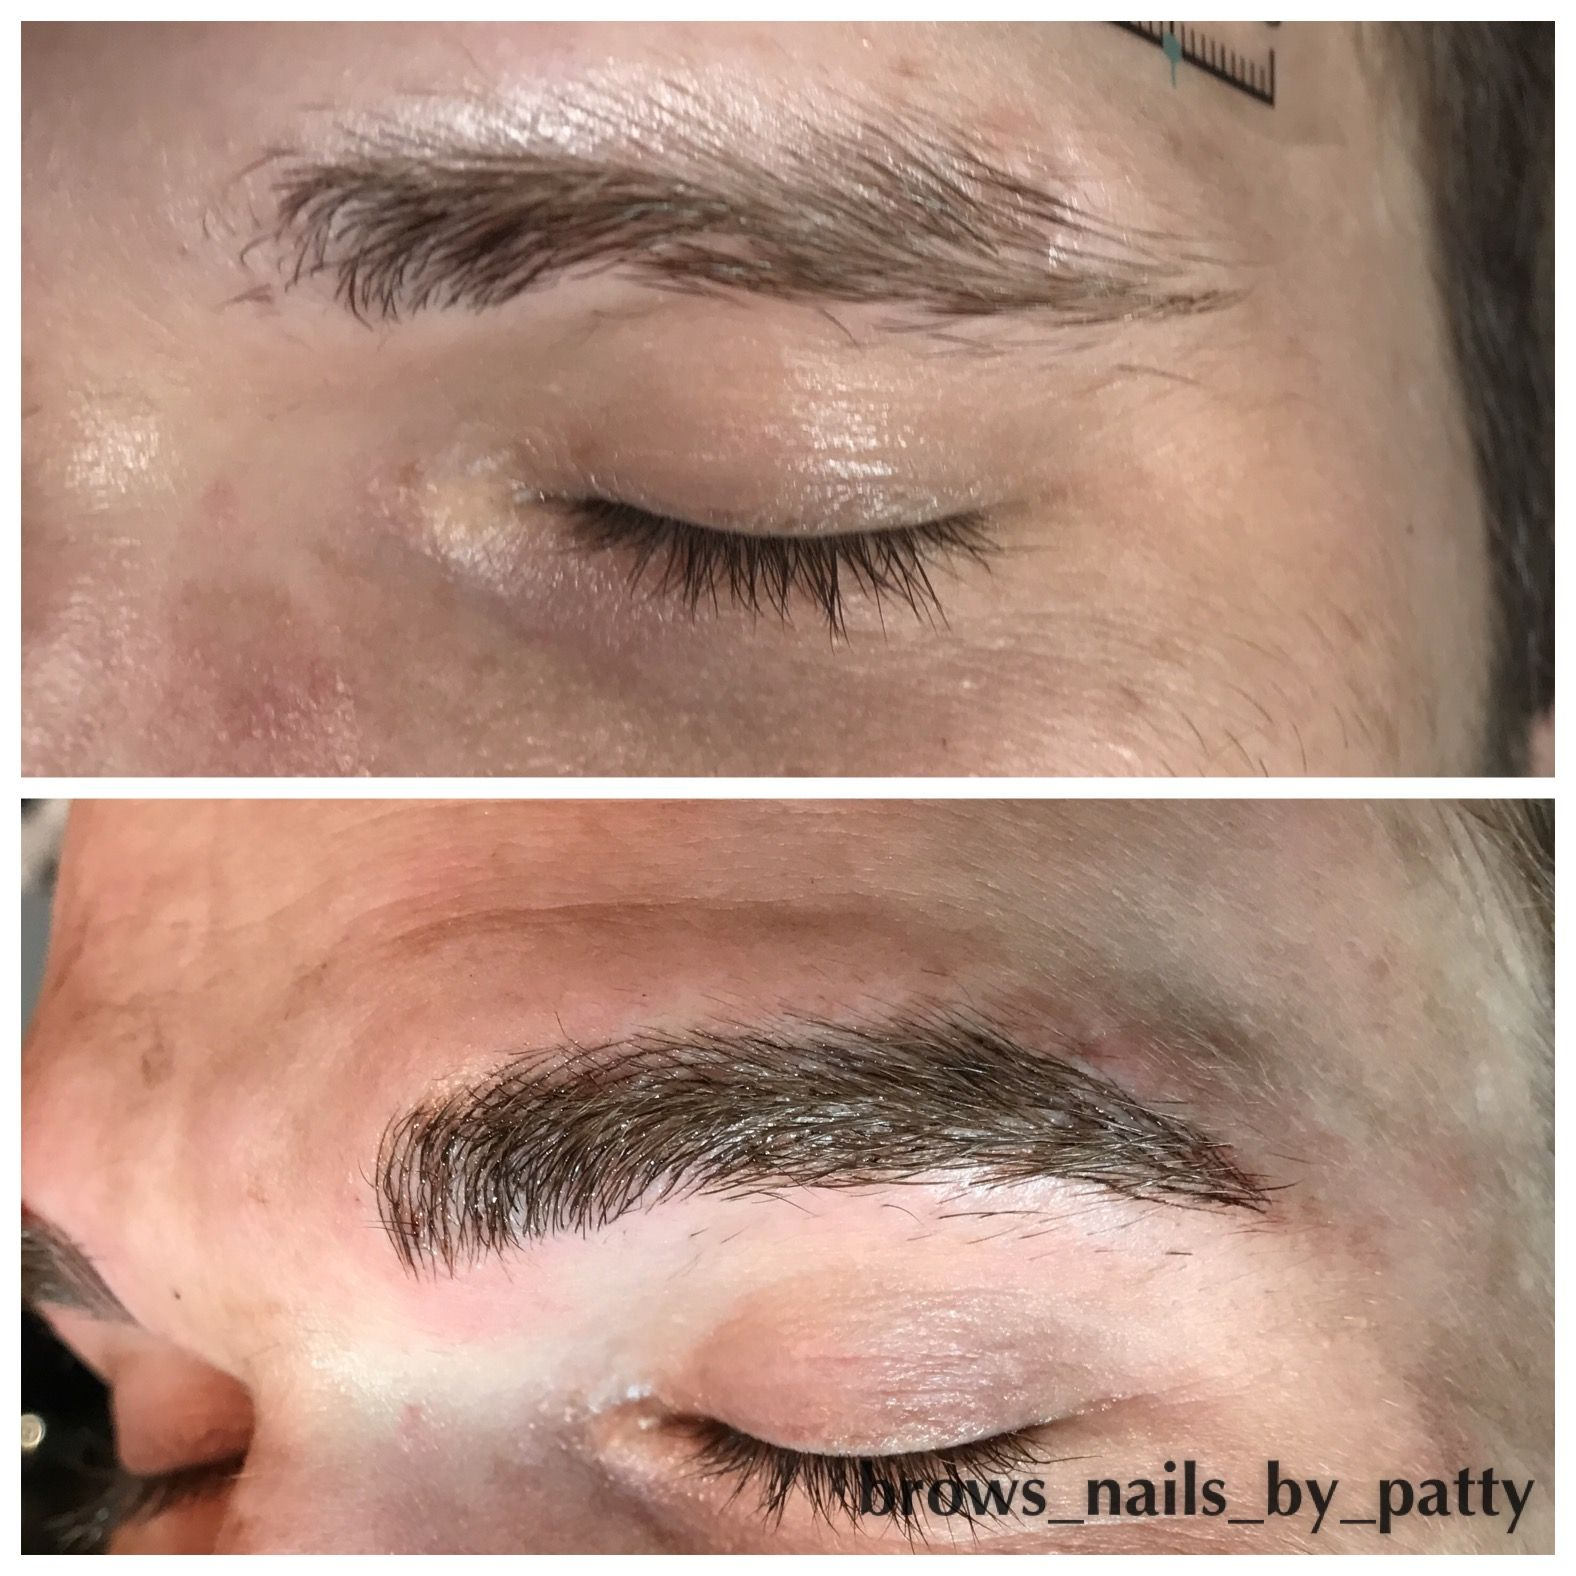 Male Before After Microblading Eyebrows Hairstrokes Semipermanent Pattycaresosa Cosmetic Tattoo Eyebrow Tattoo Semi Permanent Eyebrows